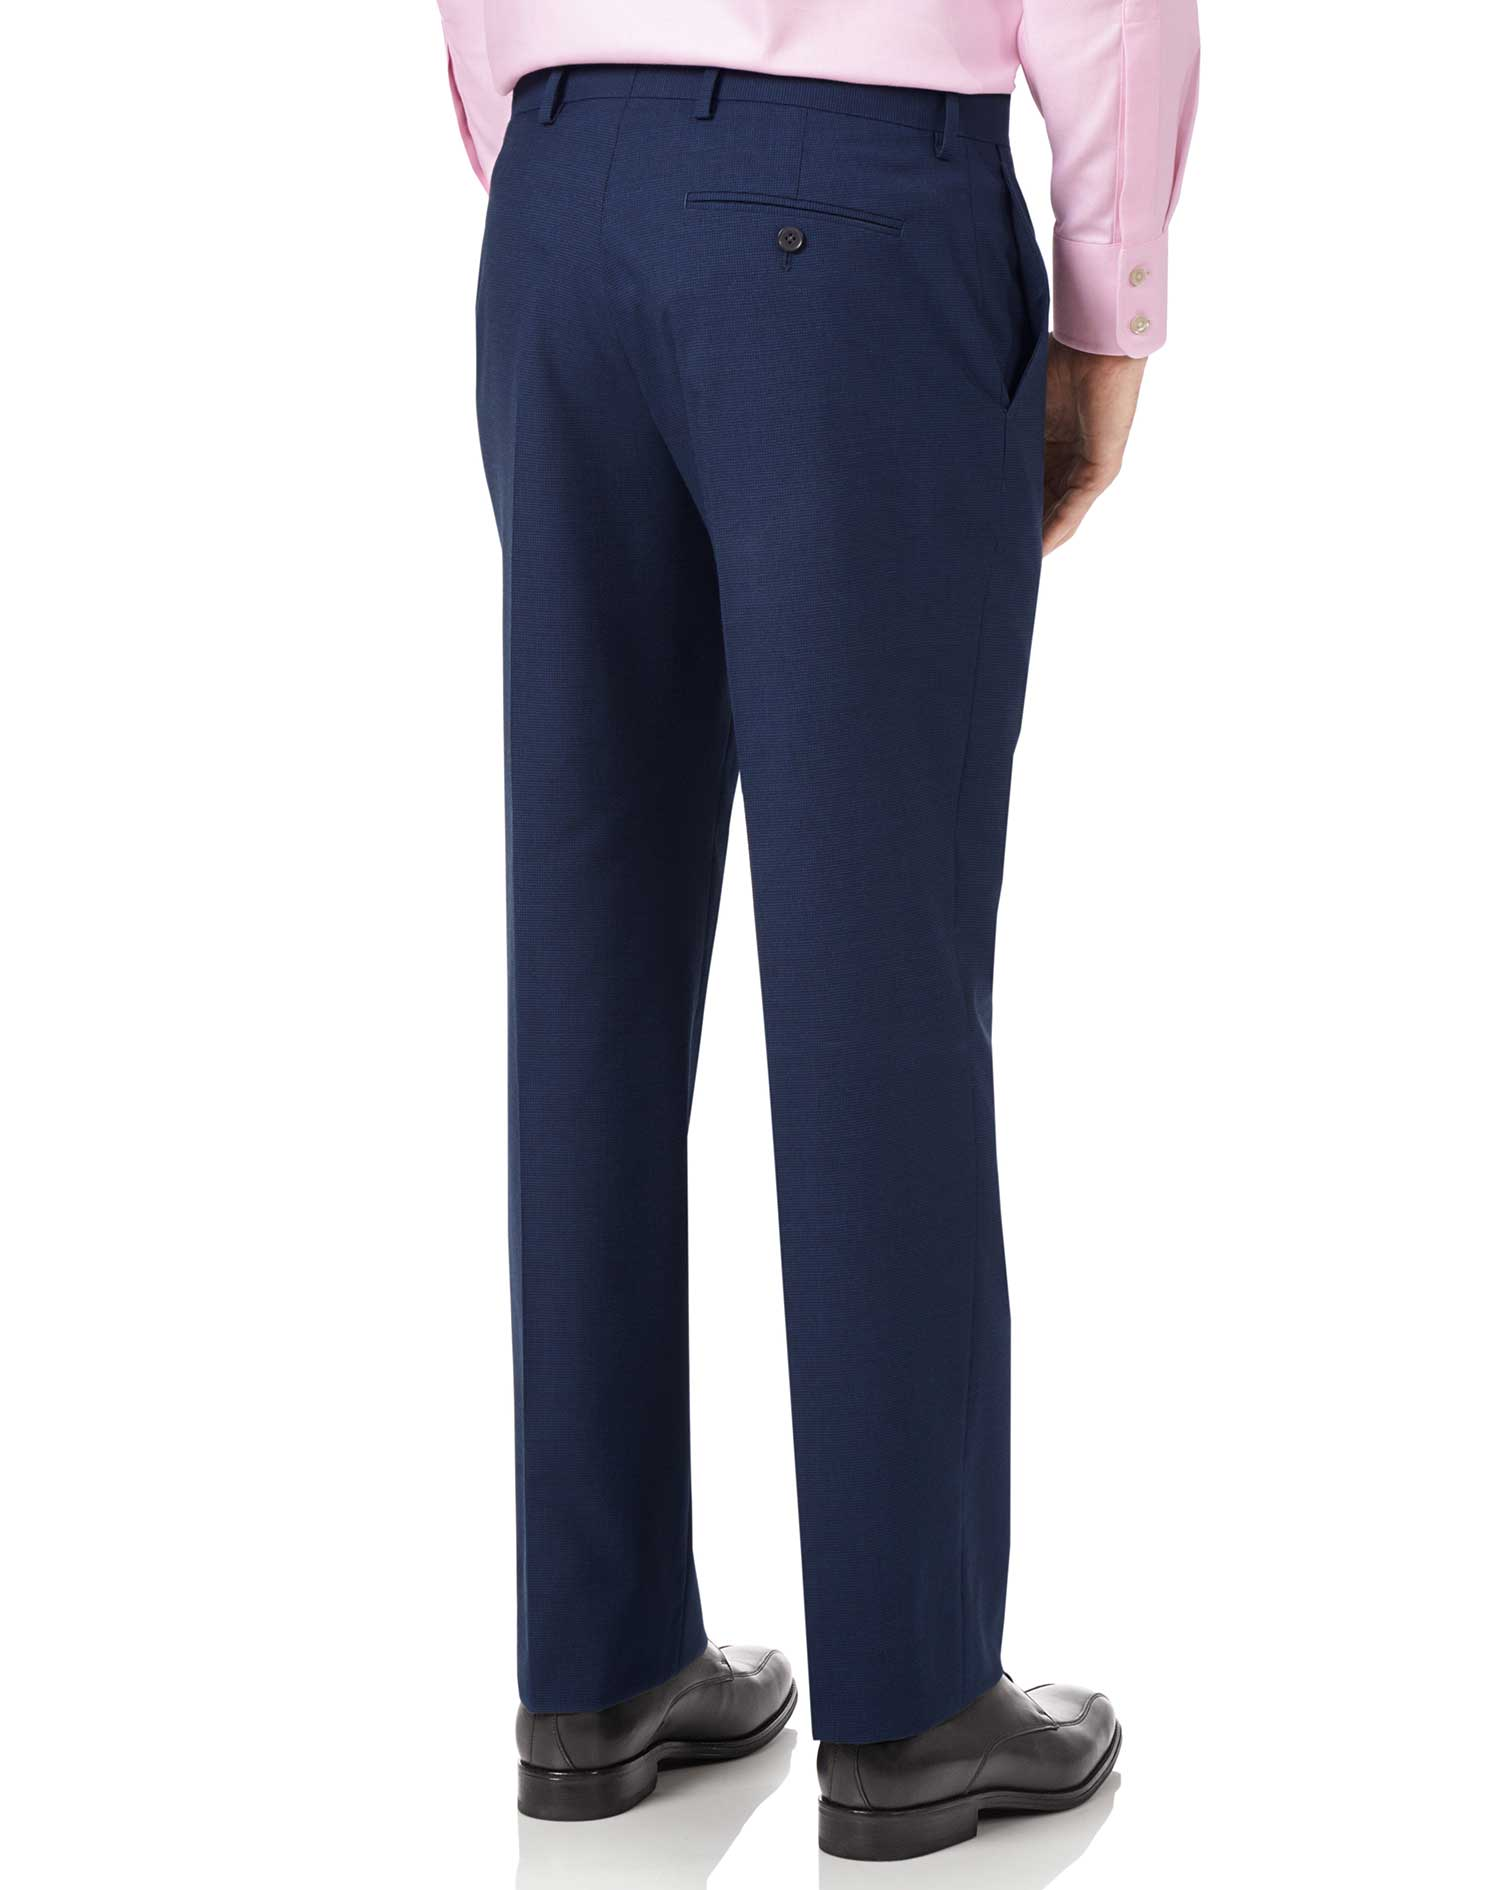 Indigo blue classic fit Panama puppytooth business suit pants